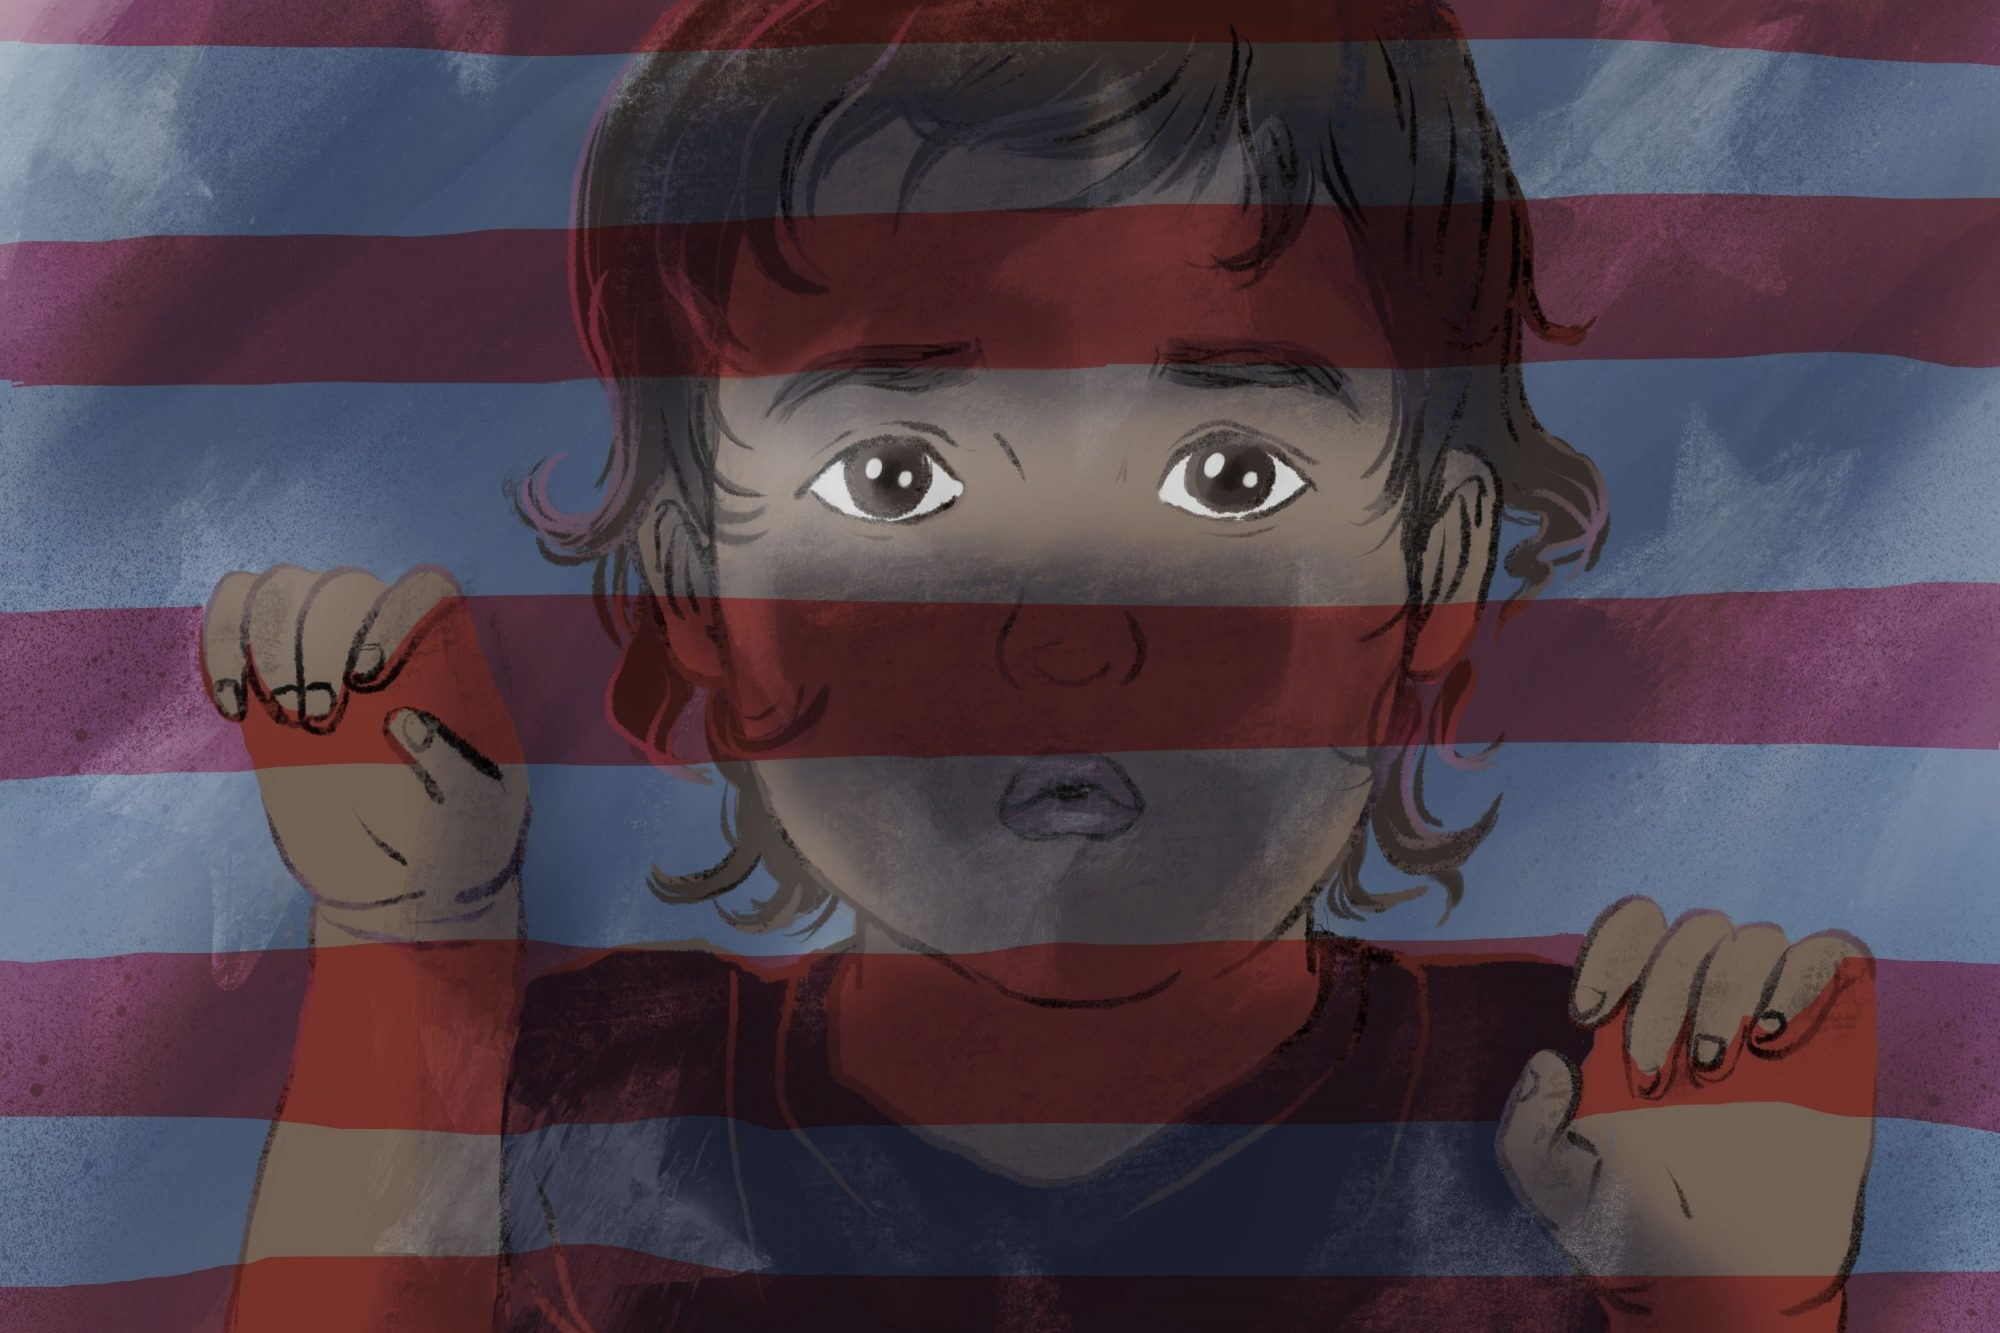 Here's What Happened to the 99 Immigrant Children Separated From Their Parents and Sent to Chicago